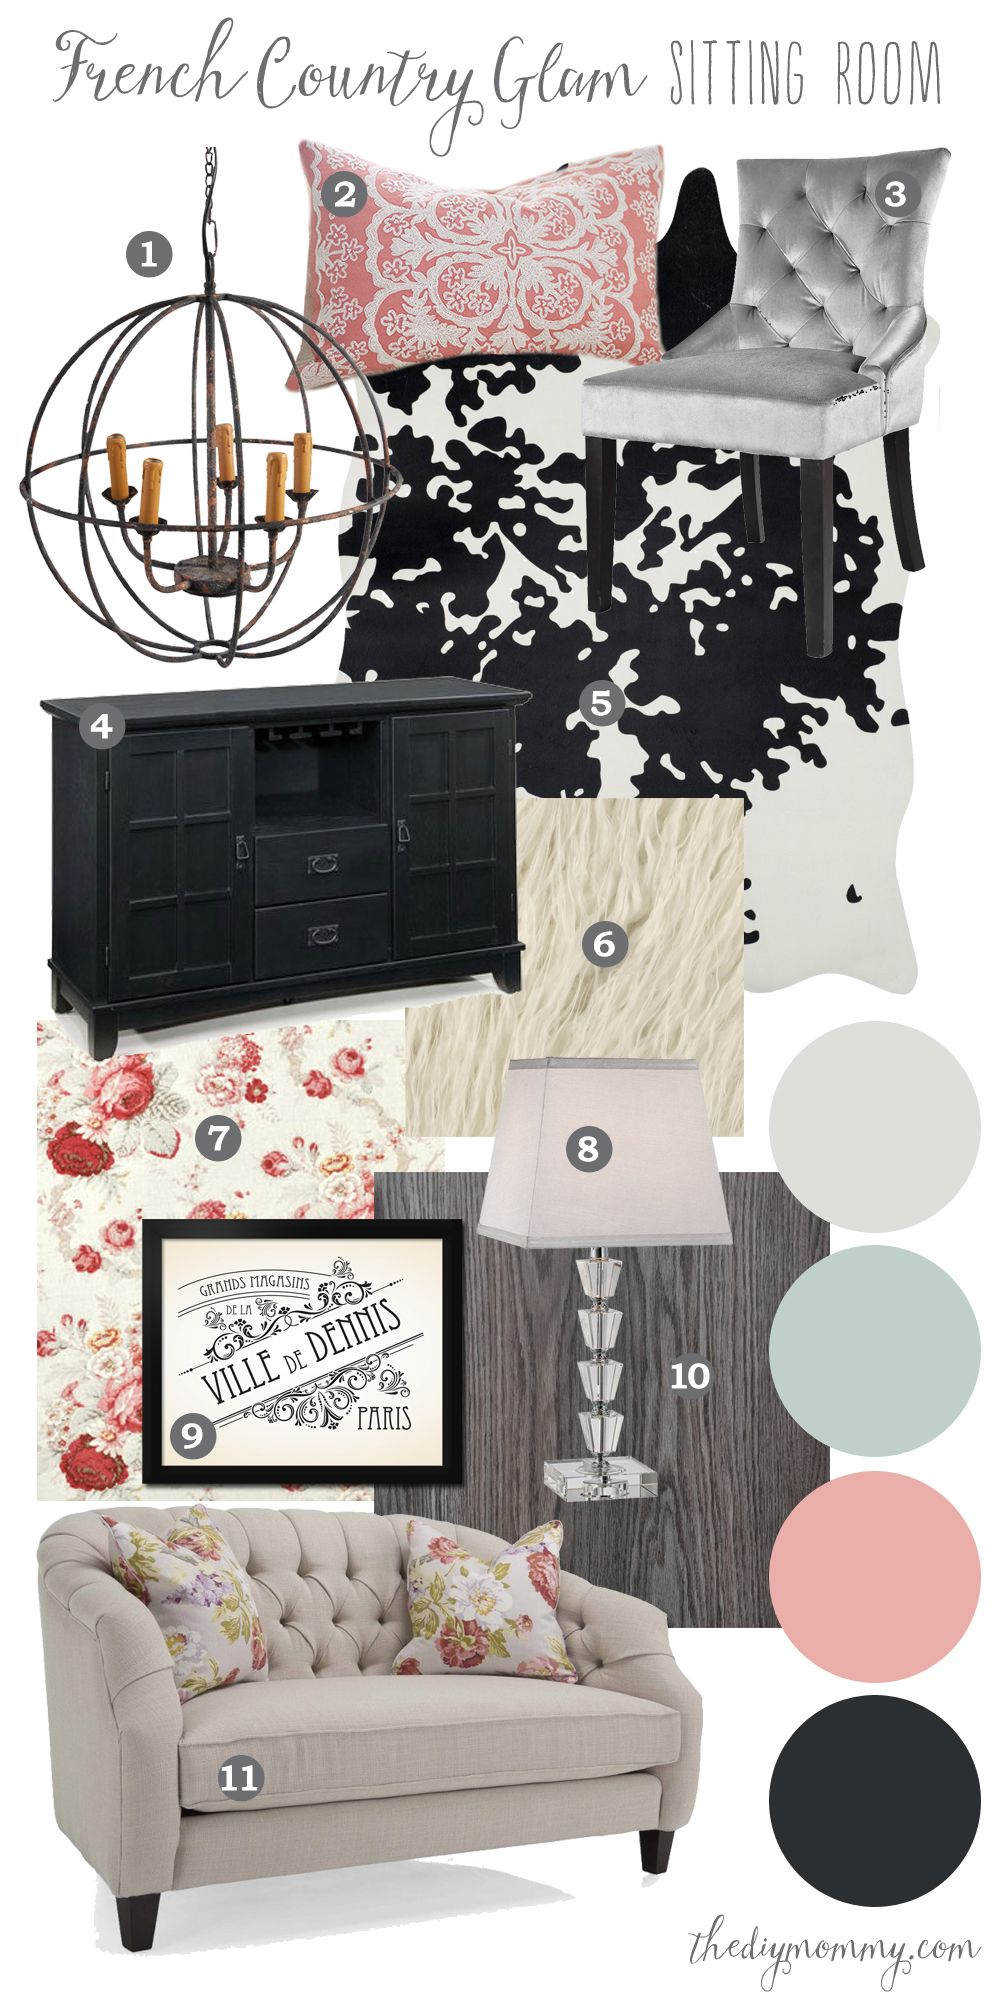 Mood board modern french country glam formal sitting room for Modern living room mood board